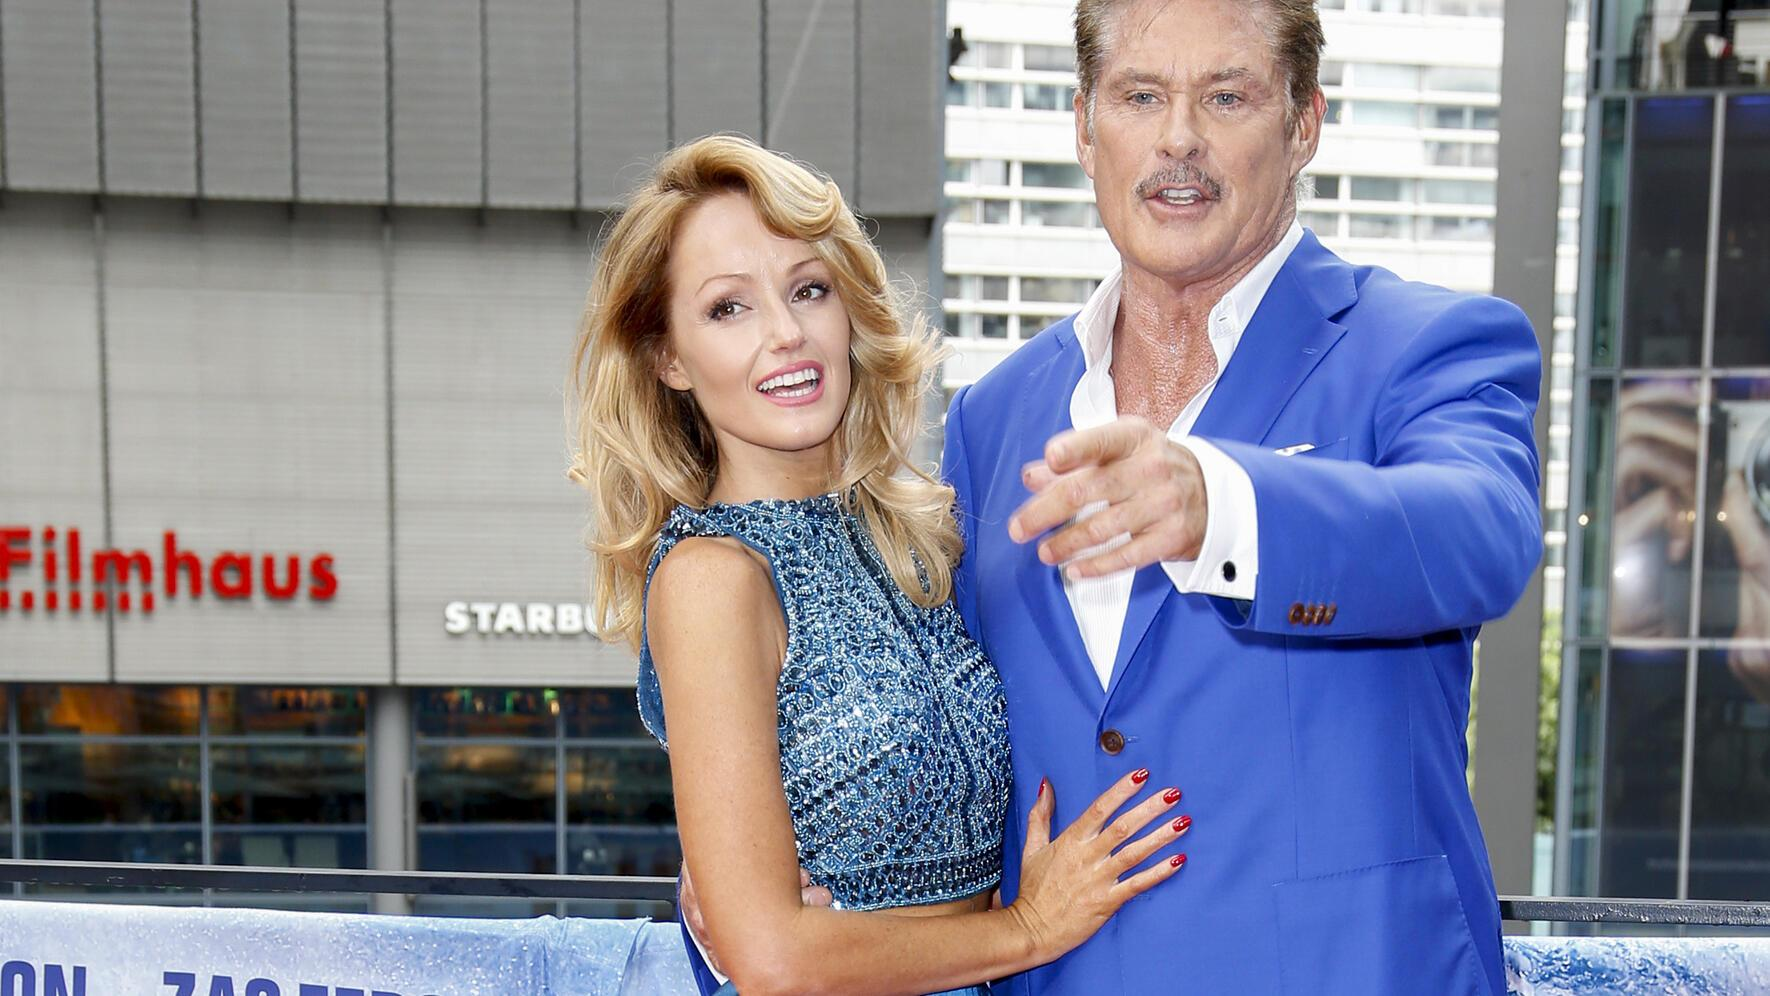 BERLIN, GERMANY - MAY 30: US actor David Hasselhoff and his partner Hayley Roberts attend the 'Baywatch' Photo Call in Berlin on May 30, 2017 in Berlin, Germany. (Photo by Isa Foltin/WireImage)